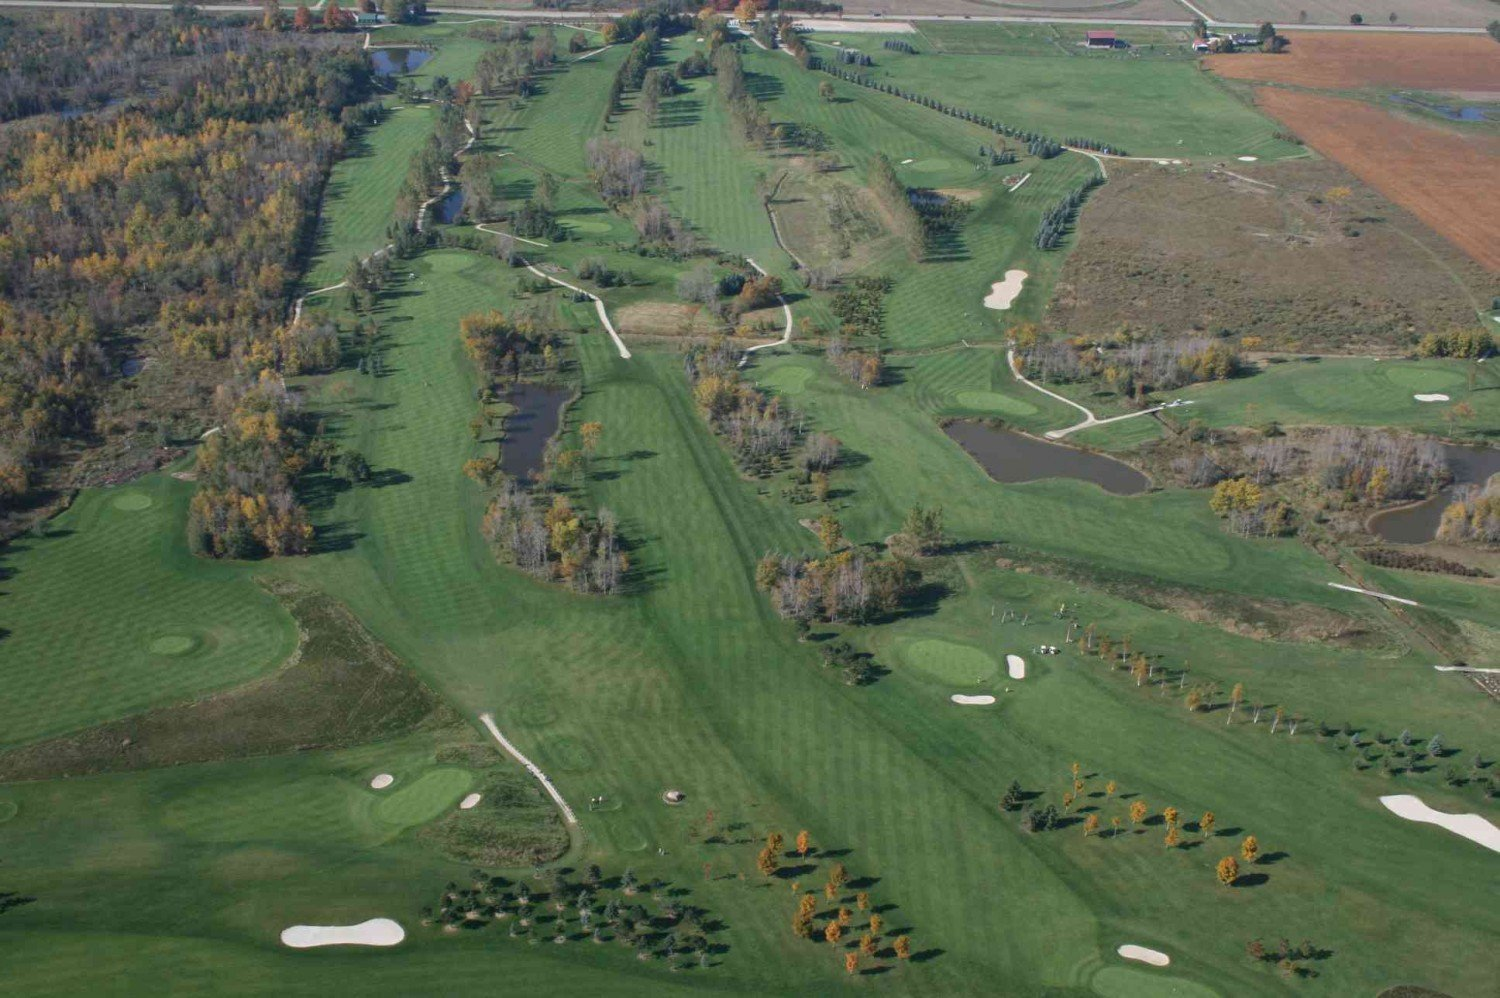 Practice Facilities, Green, Golf, Course, Shelburne Golf, Orangeville, Range, Play, Tee-Off, Tee Box, Red, Blue, Black, Yellow, View, Trees, Greens, Fairway, Aerials, Golf Cart, Path